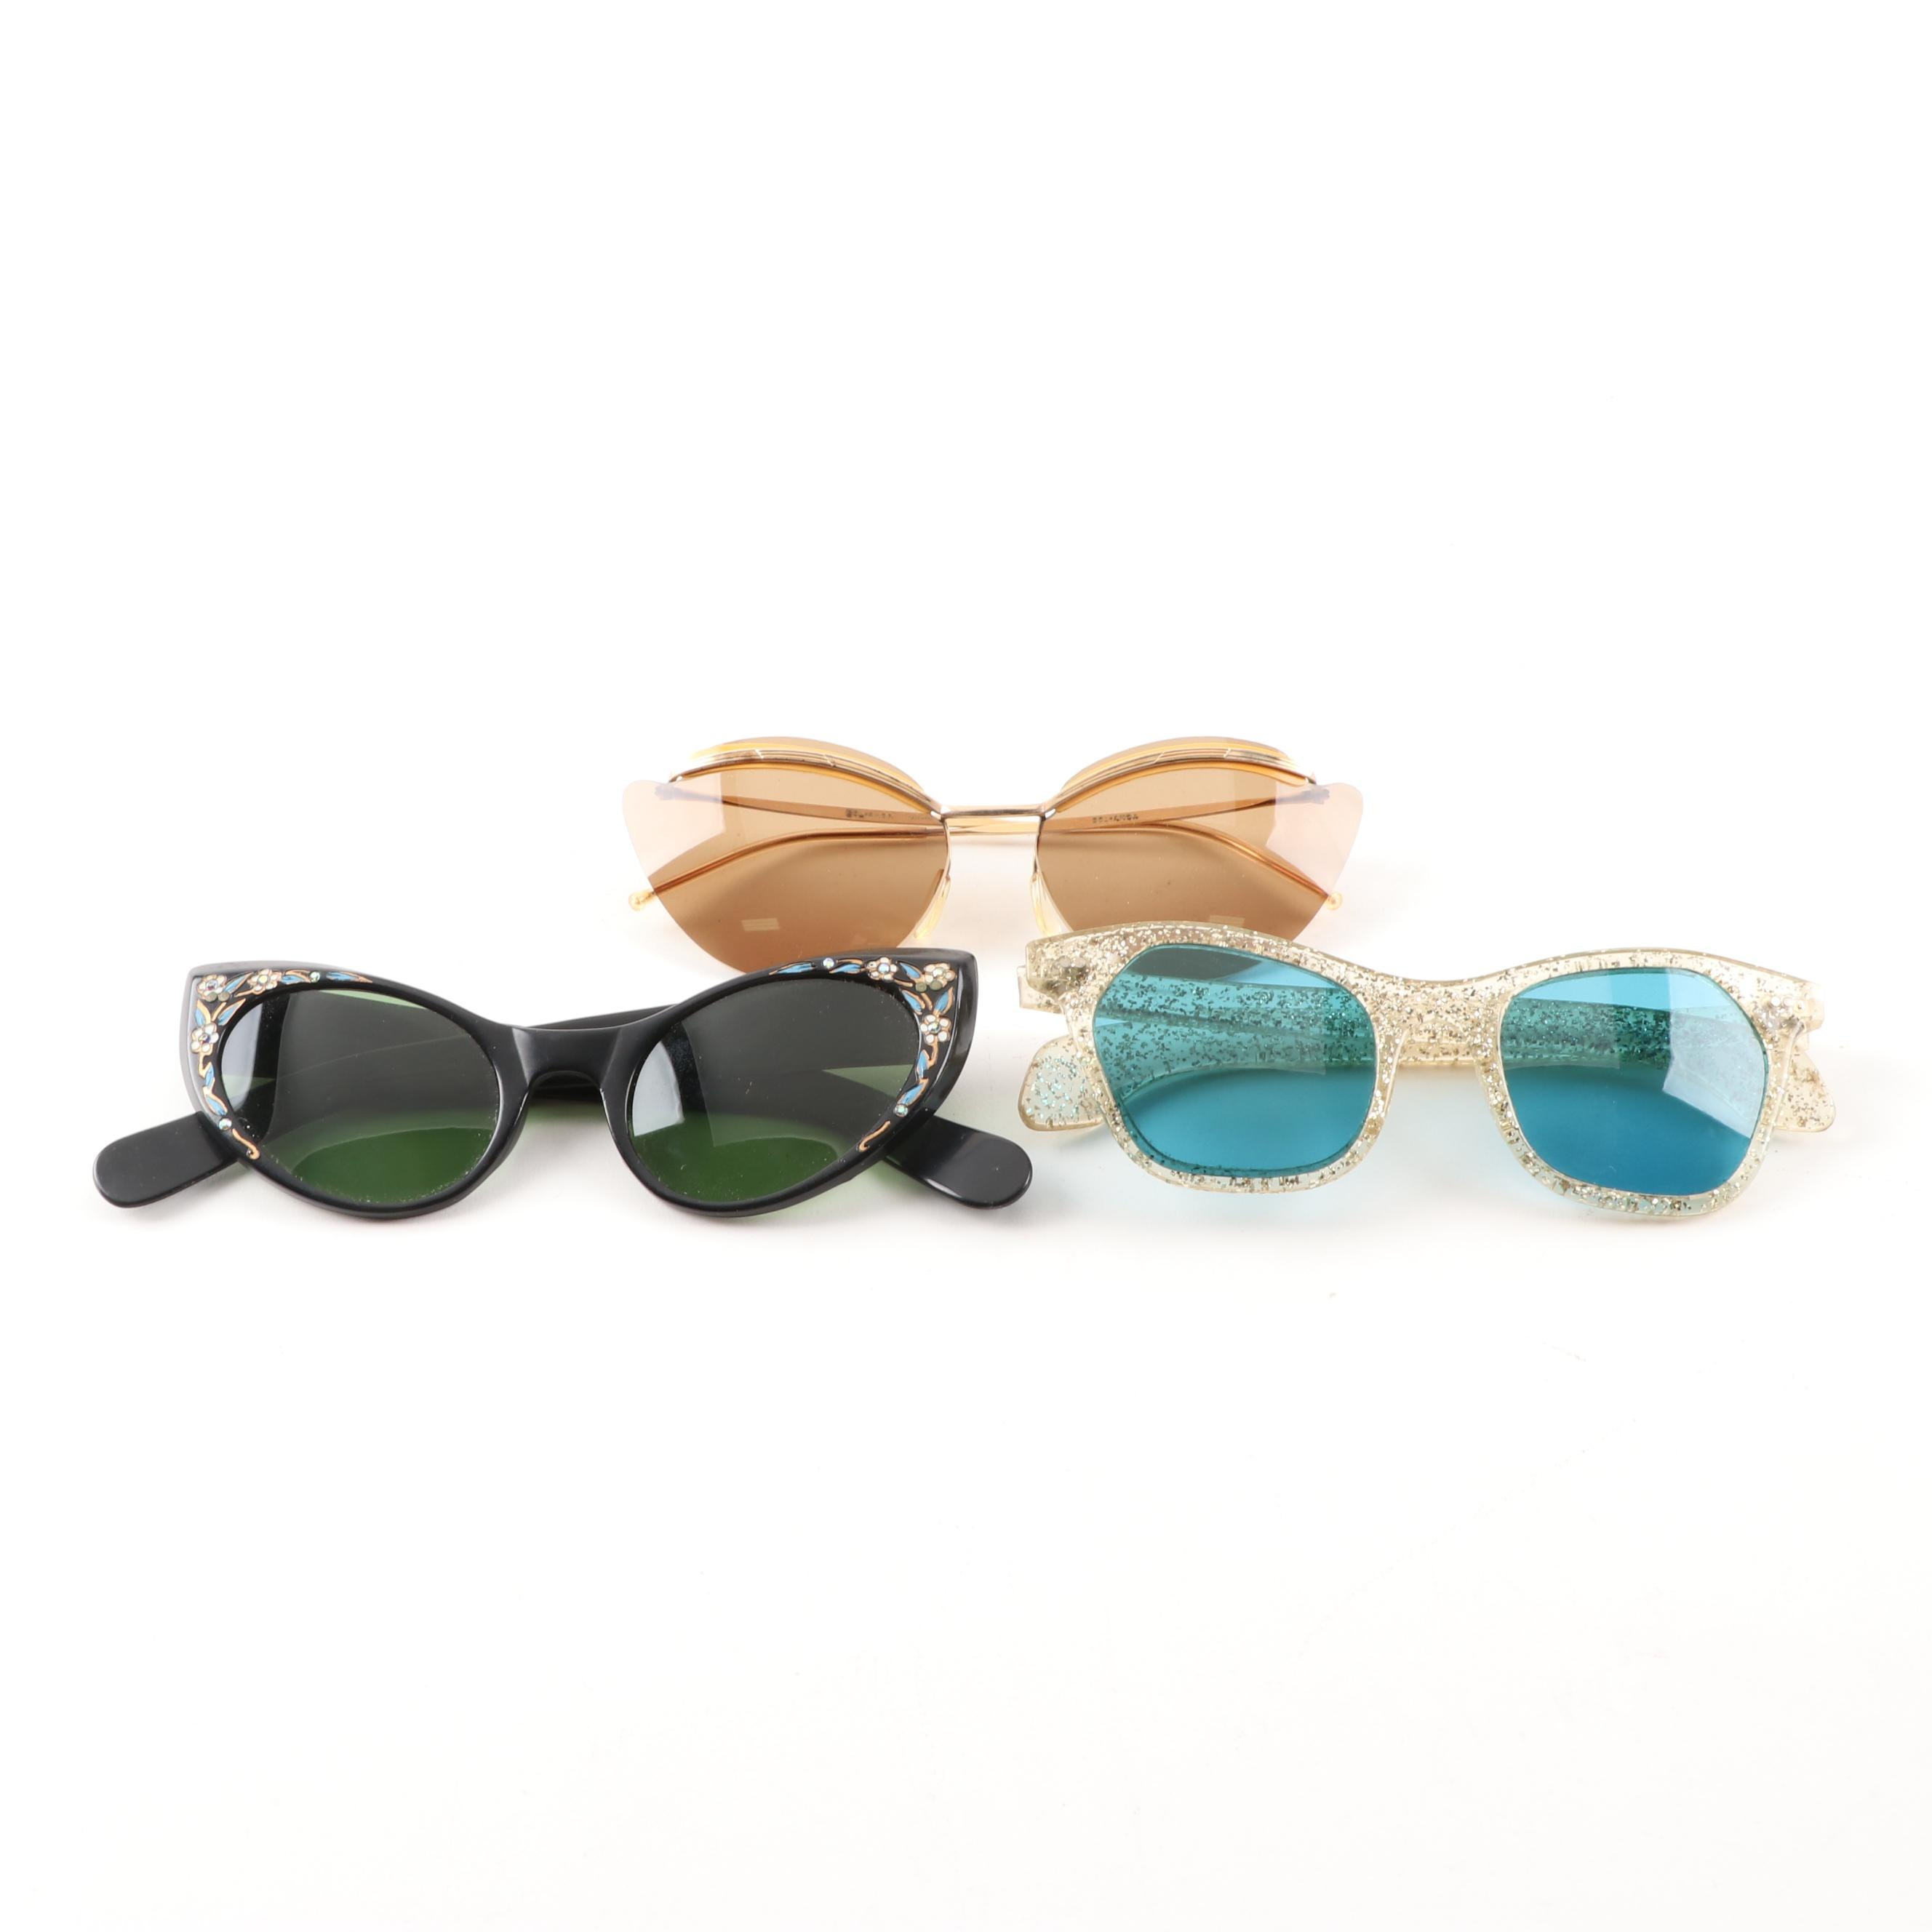 Women's Vintage Sunglasses, Mid-20th century